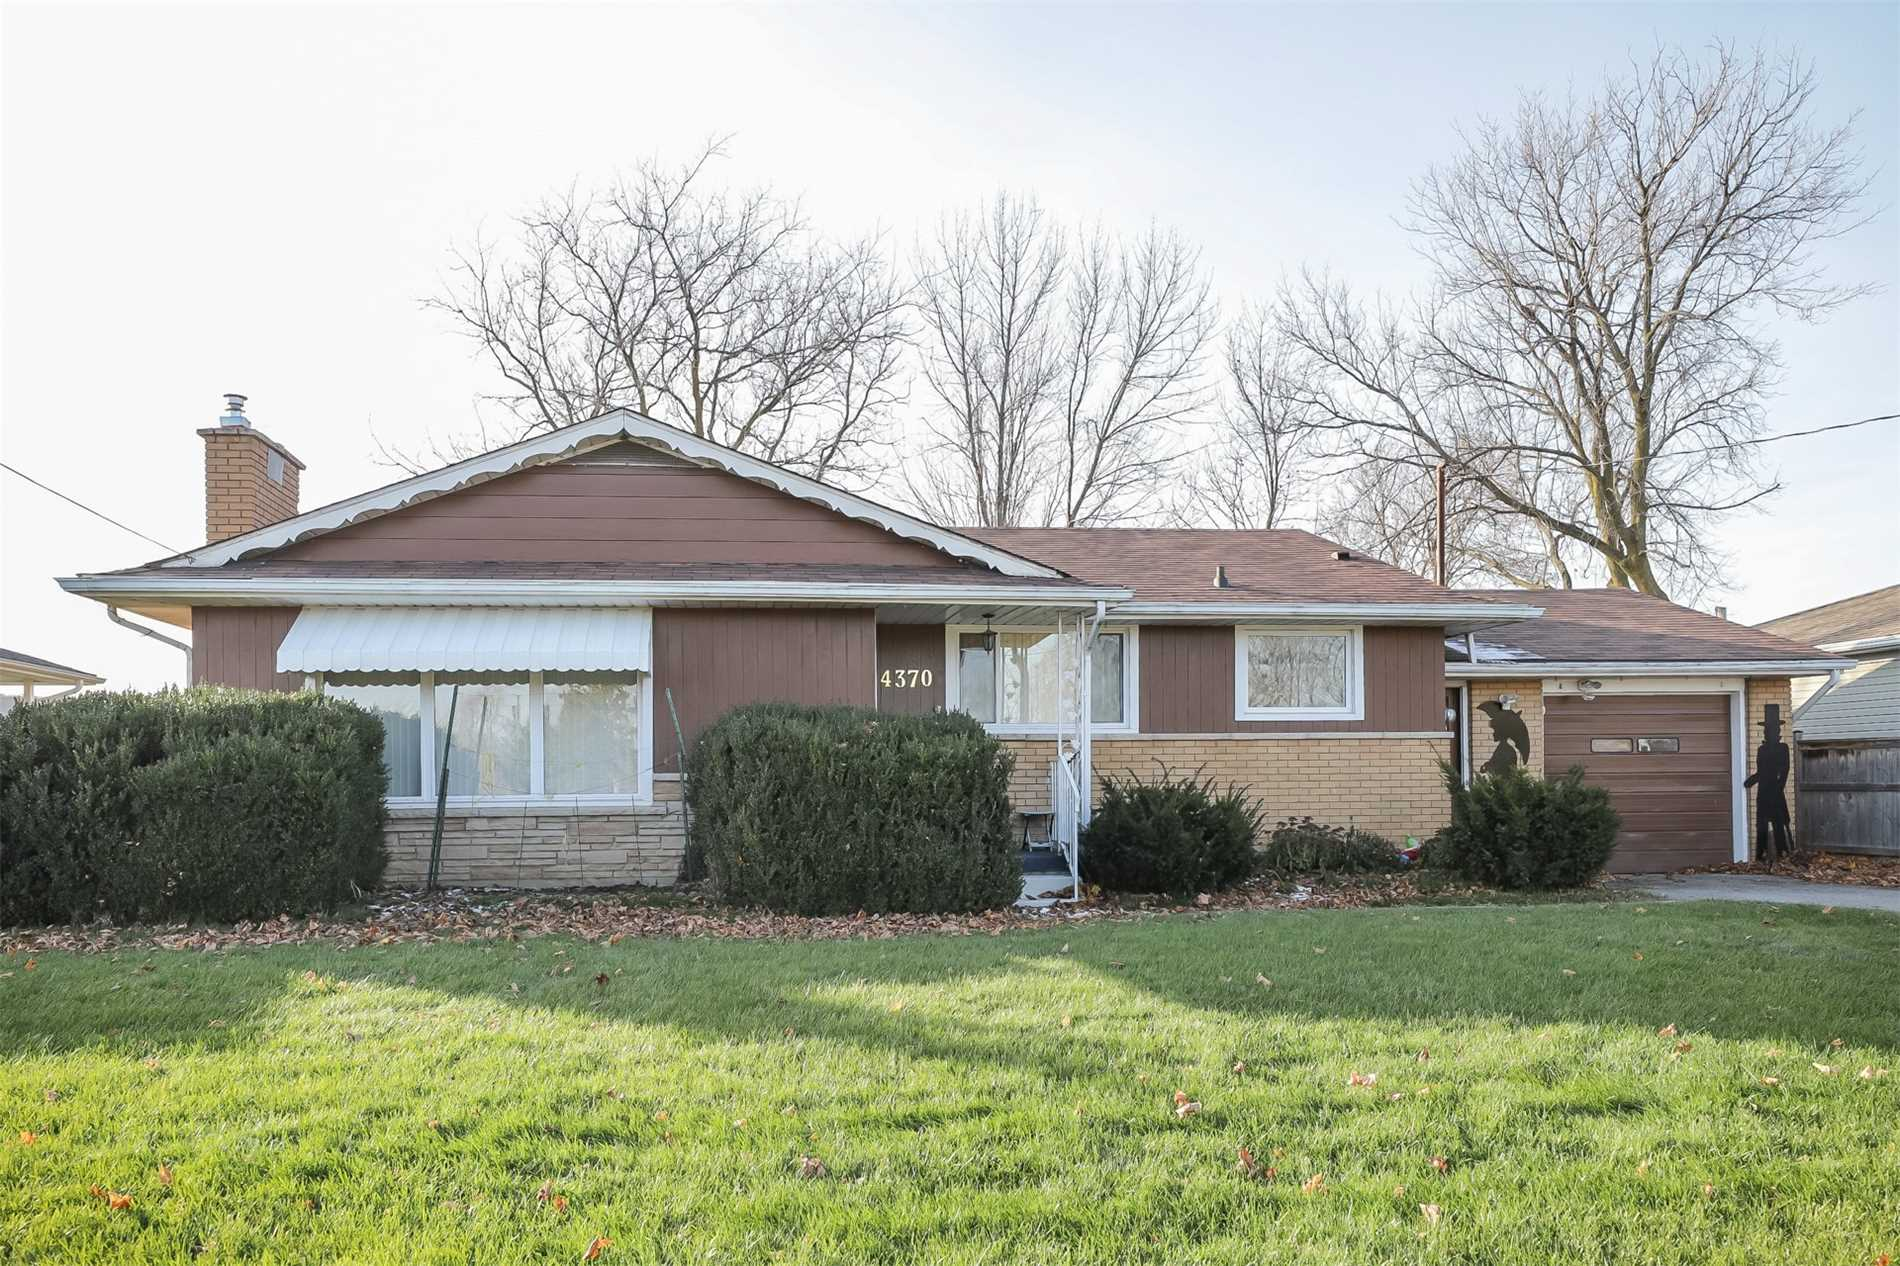 pictures of 4370 Lincoln Ave, Lincoln L0R 1B2